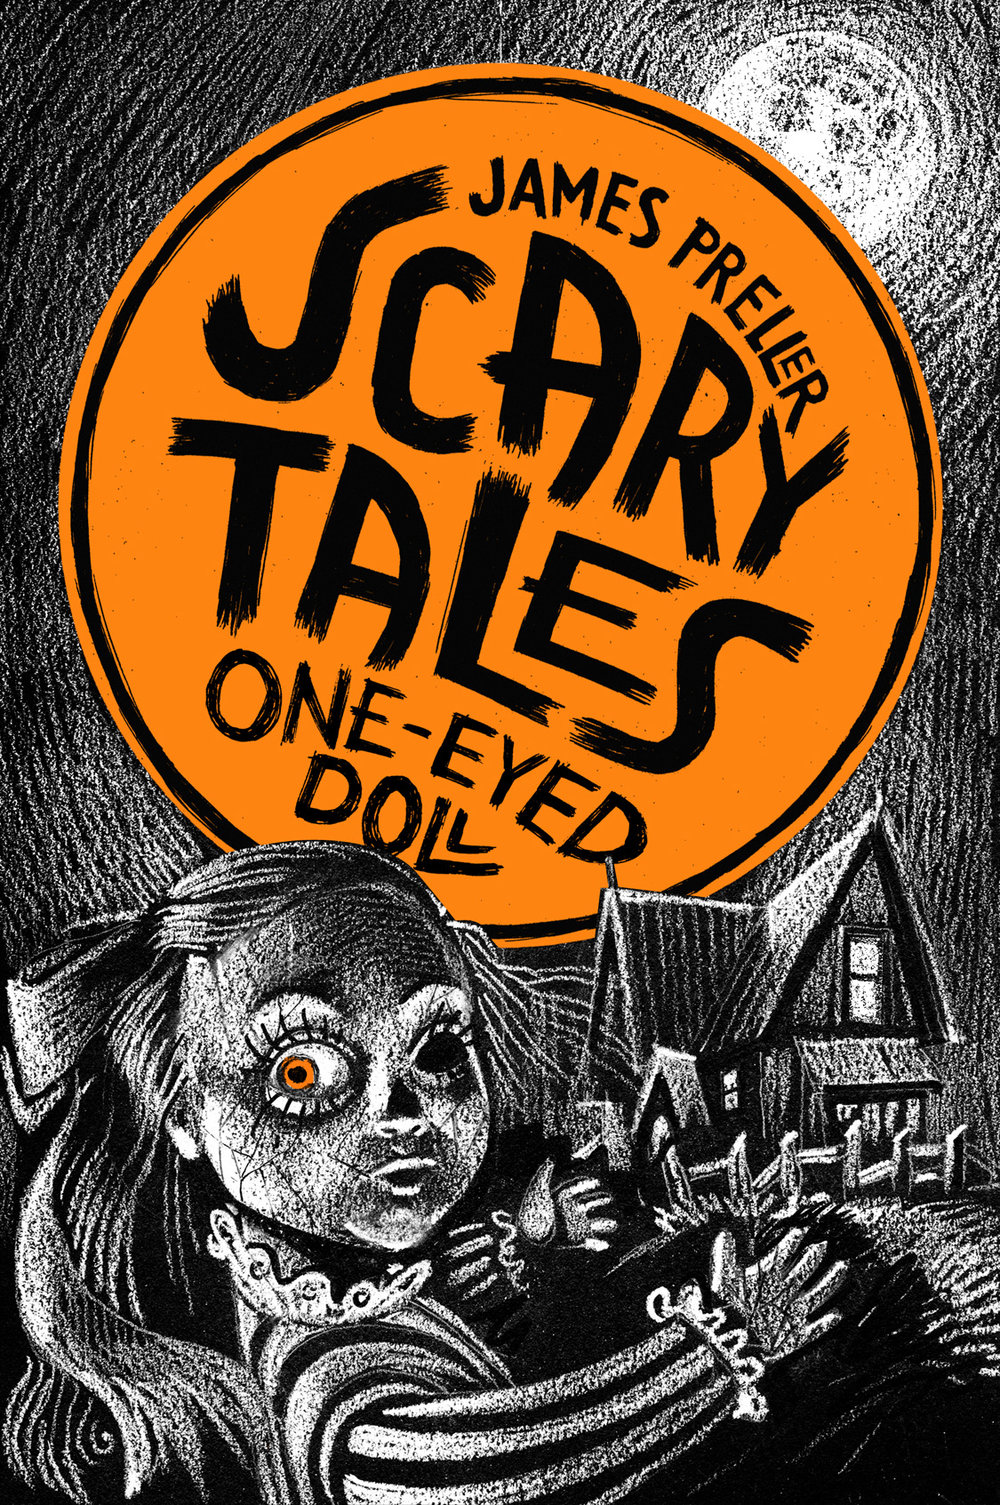 One-Eyed Doll (Scary Tales) - This quick story has a nice little chill without going too far for the young and young at heart. This is the kind of story that might be told and retold at campfires and sleepovers for years to come.Click on the image for a full review of this title.